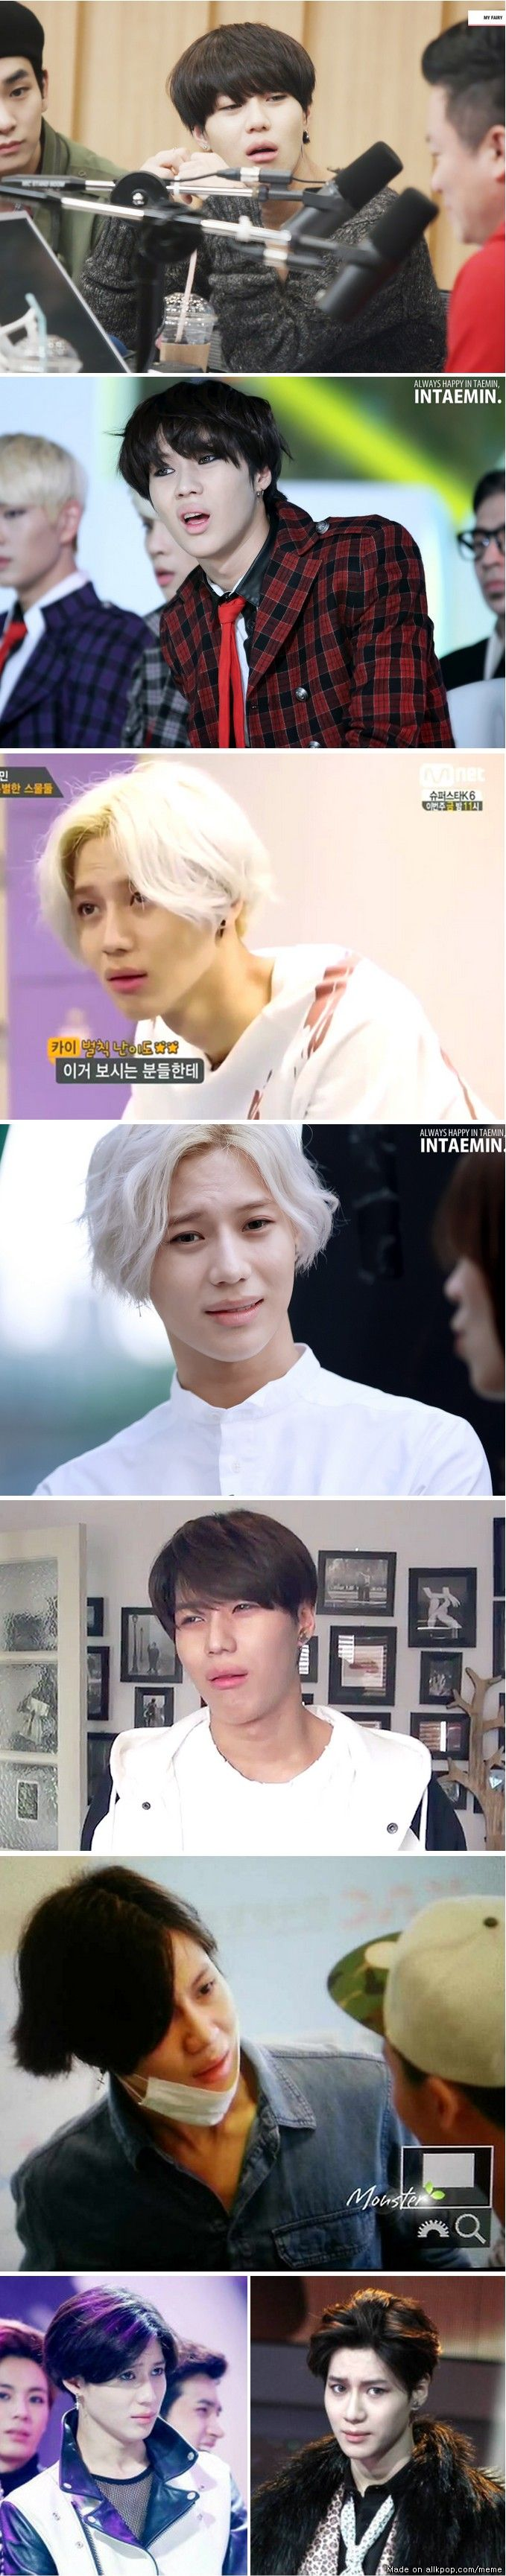 Taemin's judging face is a masterpiece lol | allkpop Meme Center